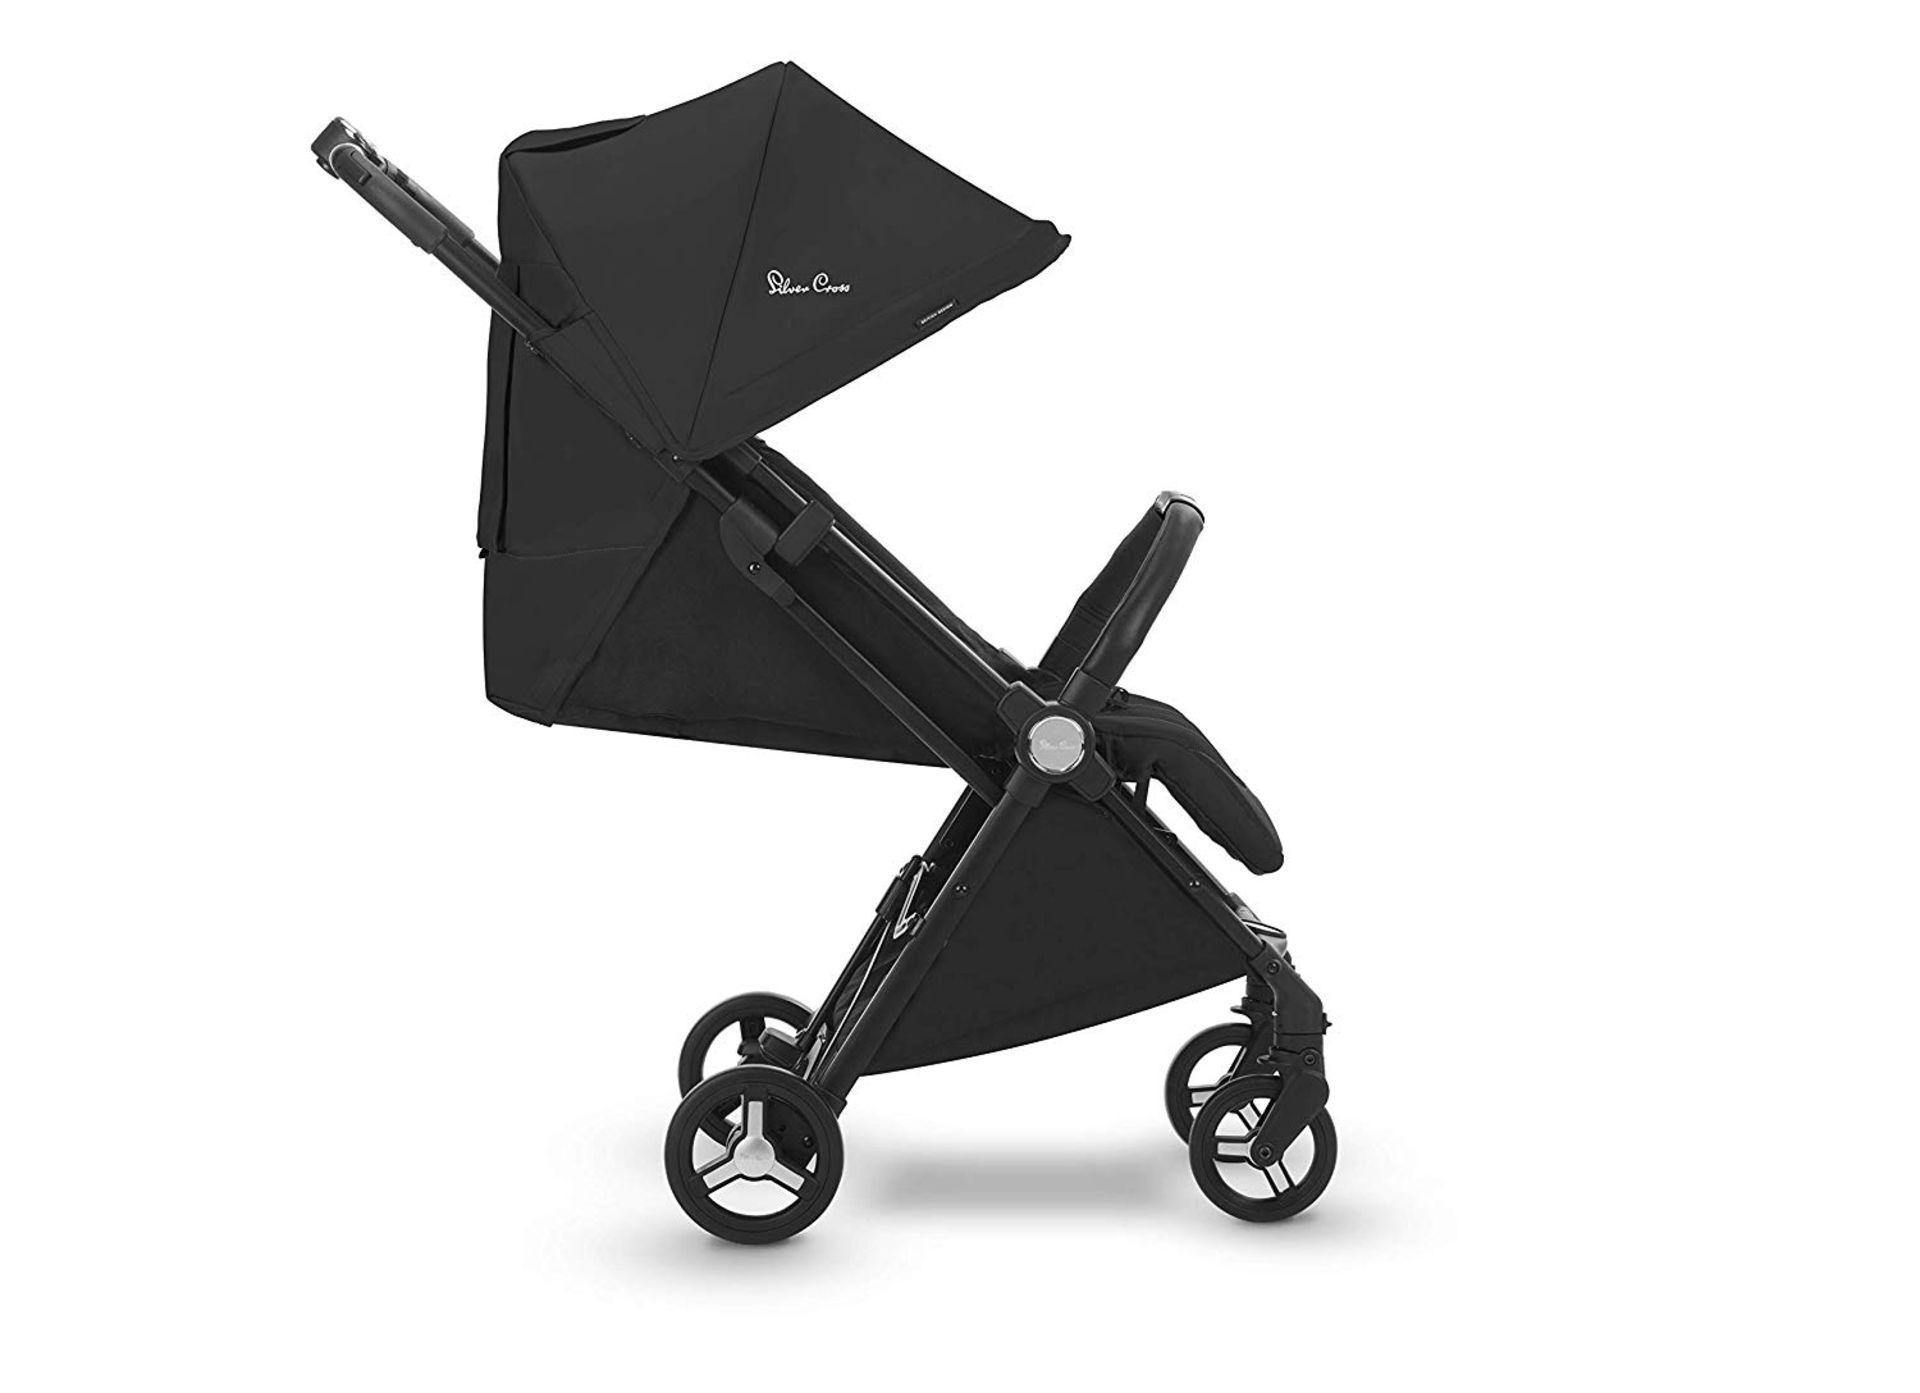 Lot 23 - Silver Cross Jet Stroller, Ebony RRP £215